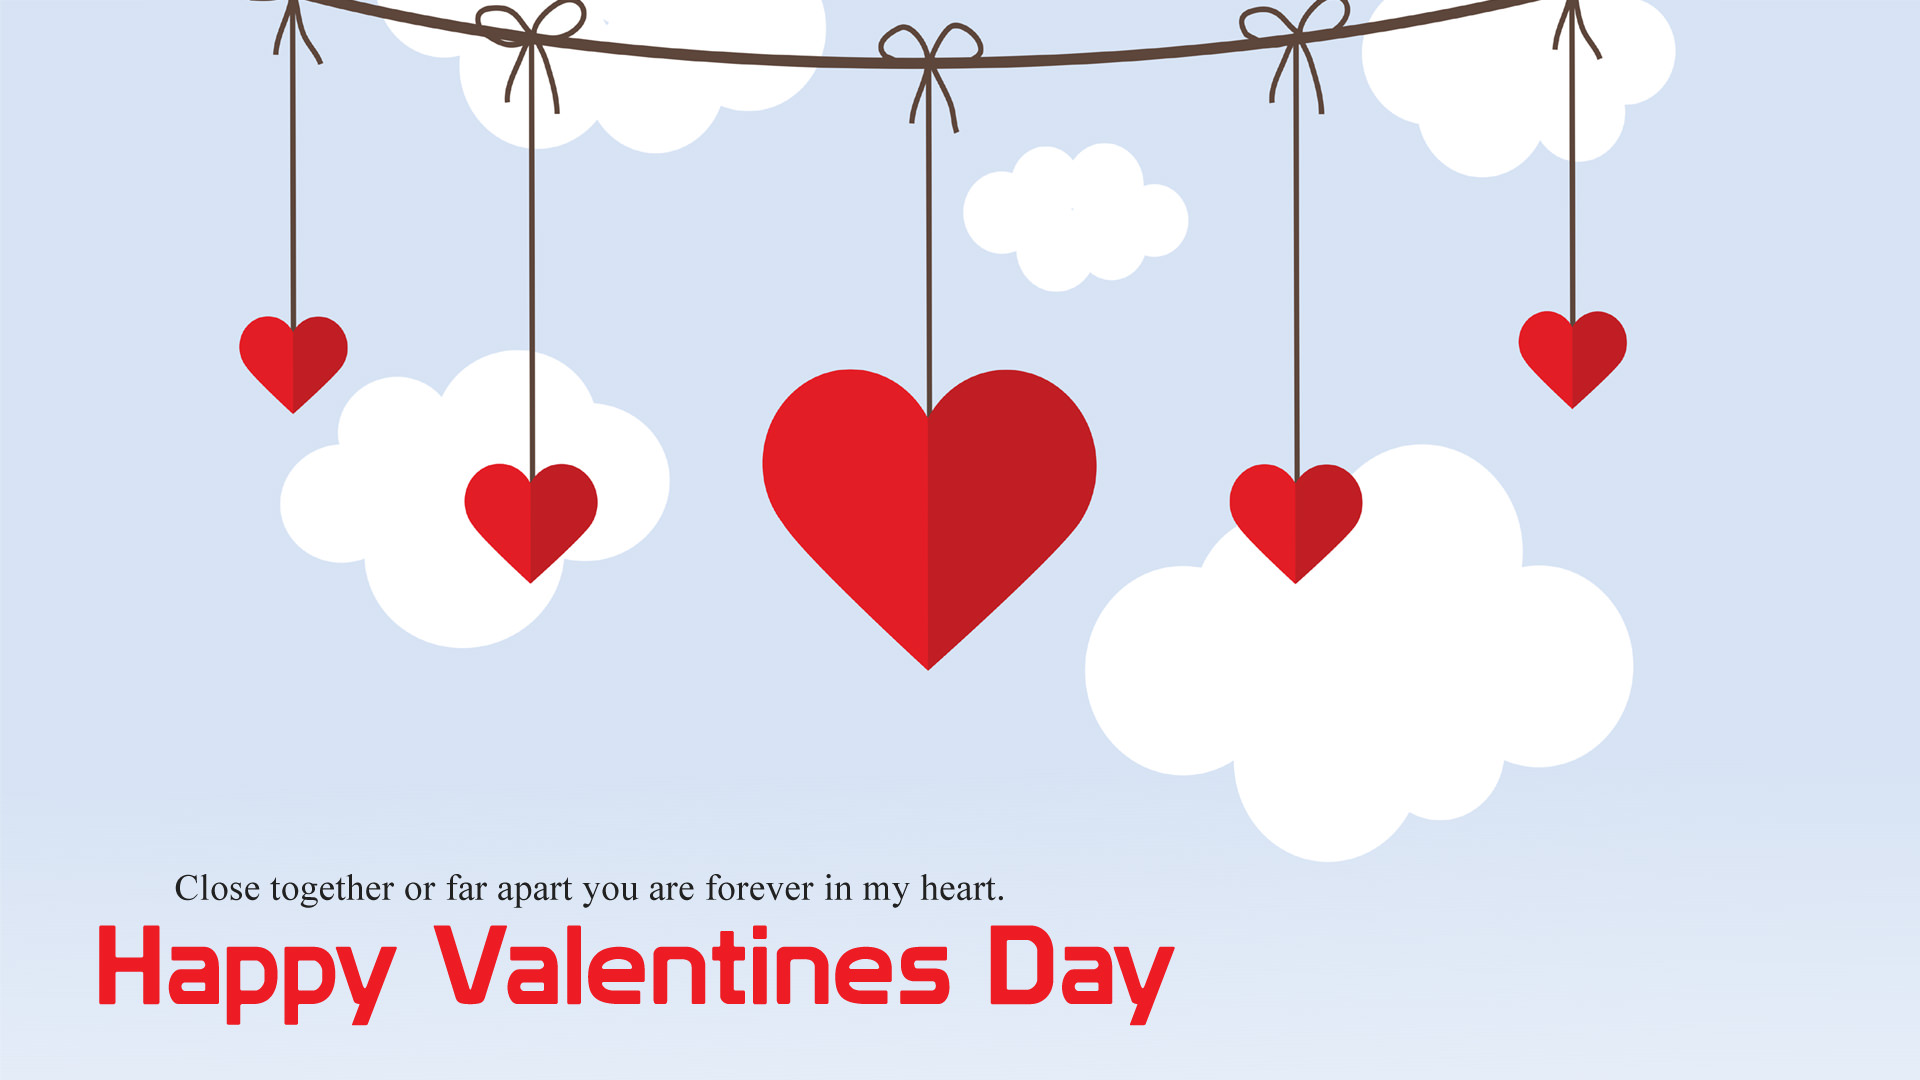 Valentines Day Wallpaper Wishes